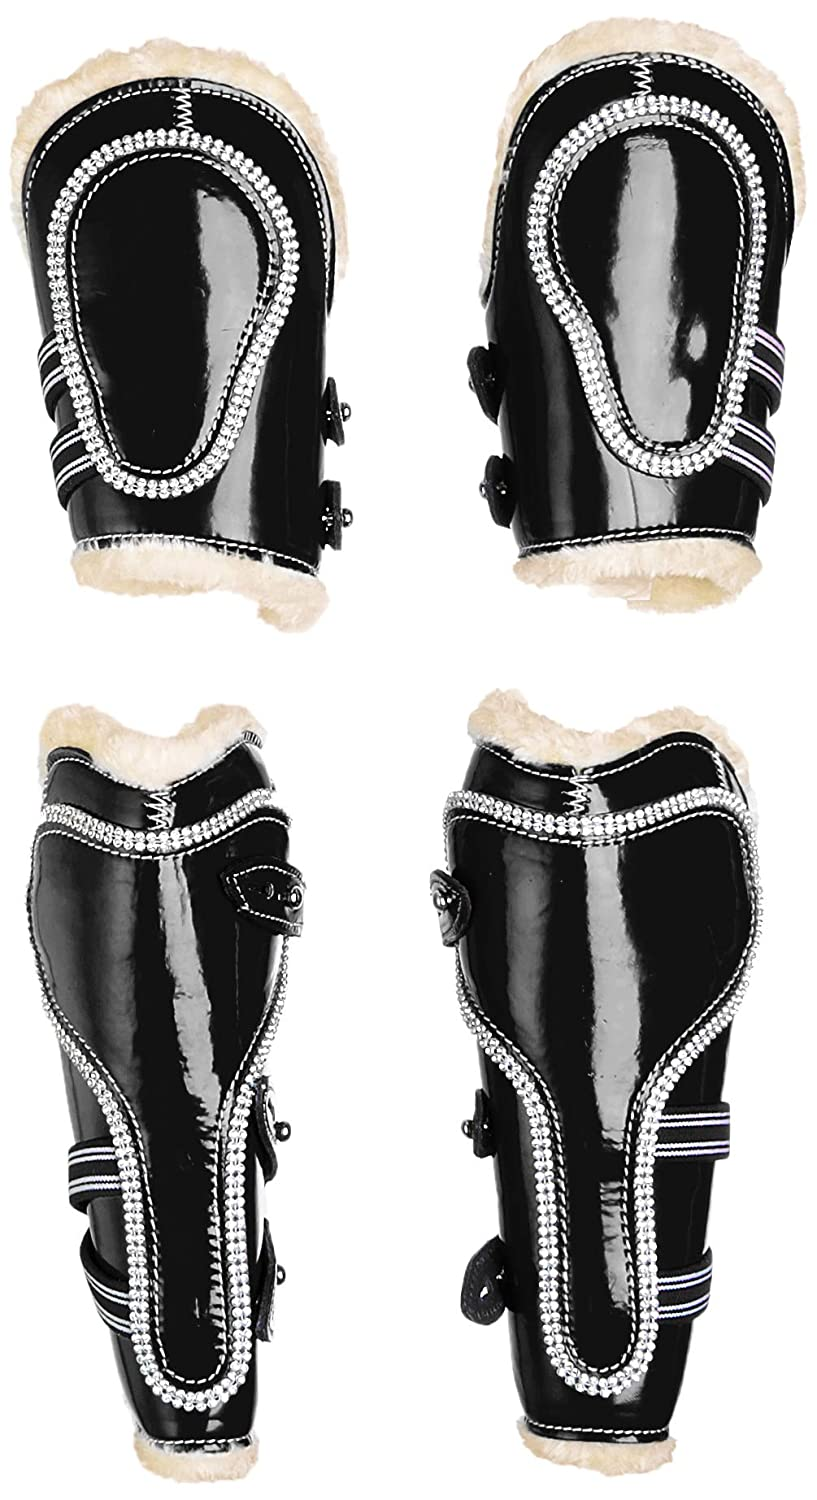 COB Cwell Equine New Bling Tendon & Fetlock Boots Sparkly Diamante on Patent Leather BLACK F C P (COB)